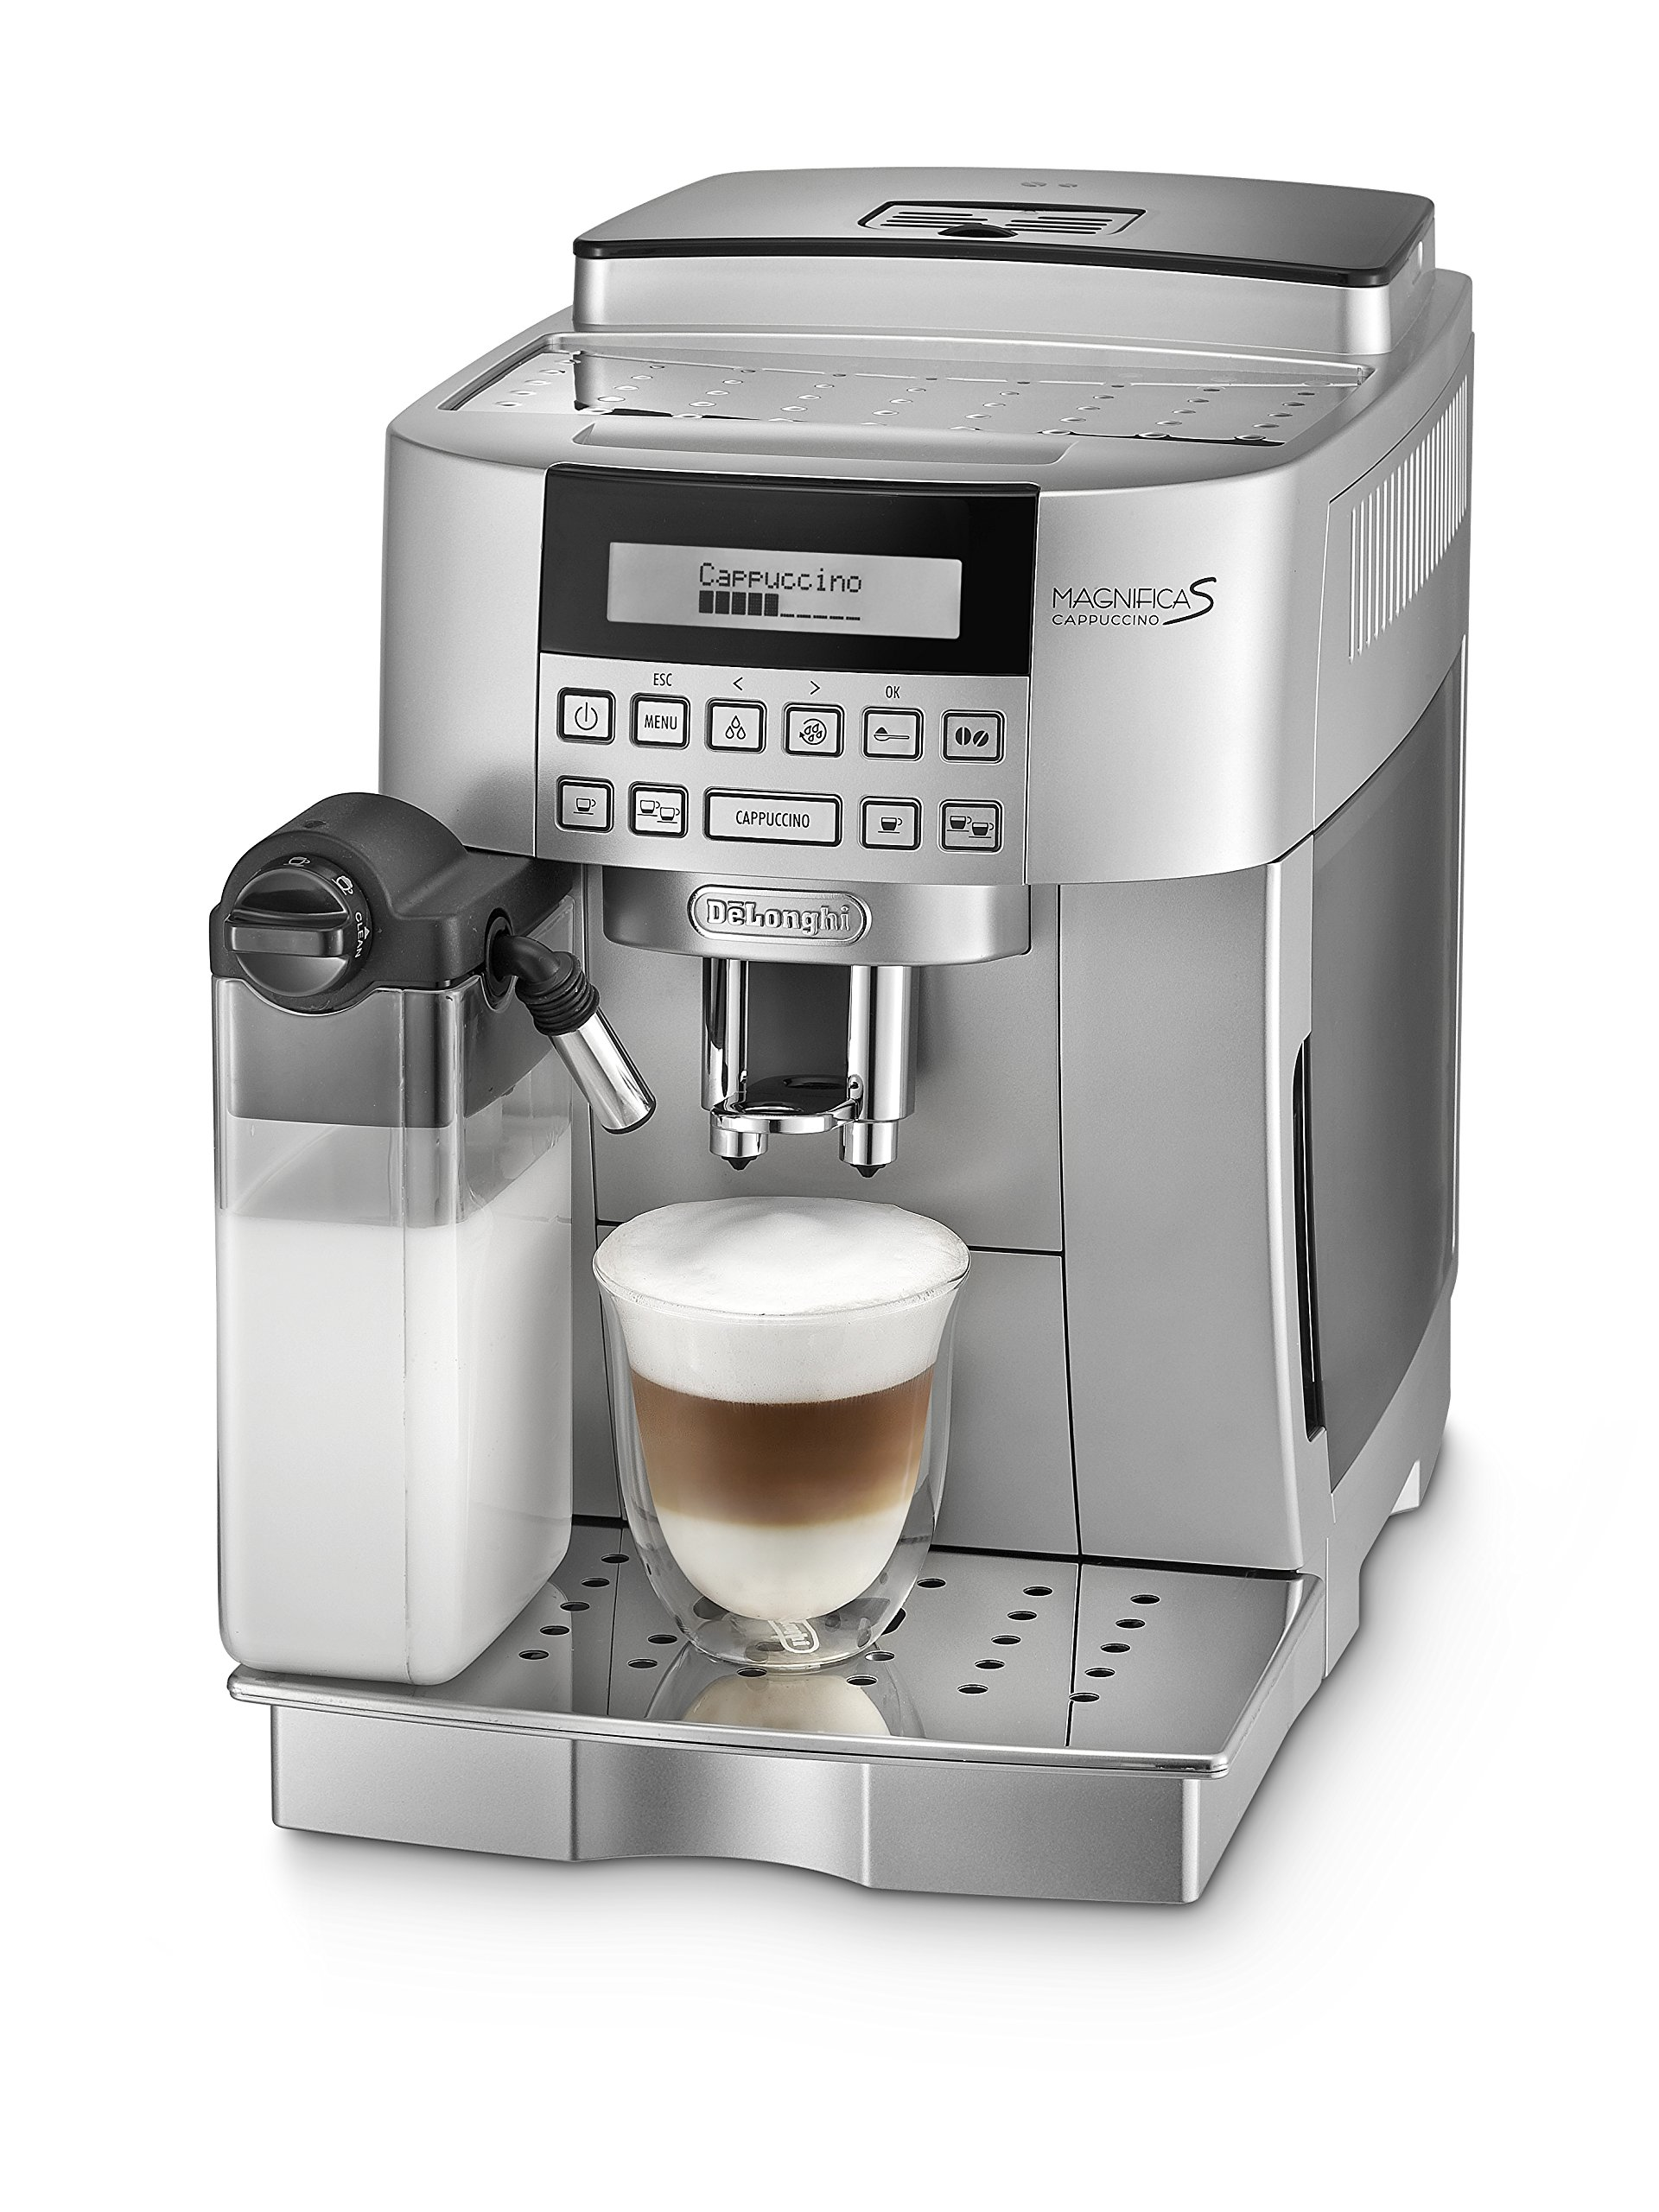 DeLonghi-Magnifica-S-Cappuccino-ECAM-22366S-Kaffeevollautomat-Digitaldisplay-integriertes-Milchsystem-Cappuccino-auf-Knopfdruck-Herausnehmbare-Brhgruppe-2-Tassen-Funktion-silber